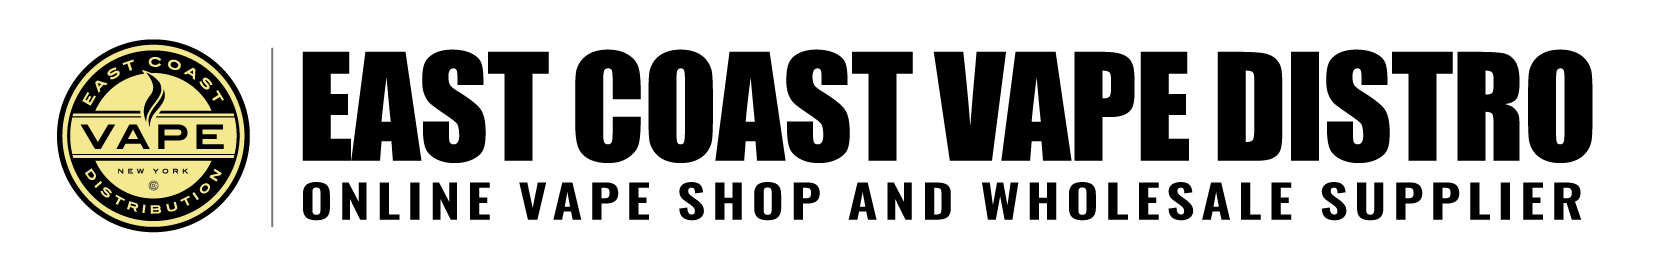 East Coast Vape Distribution - E Liquid Wholesale/E Juice Distributor - Vape Juice, eJuice and eLiquid